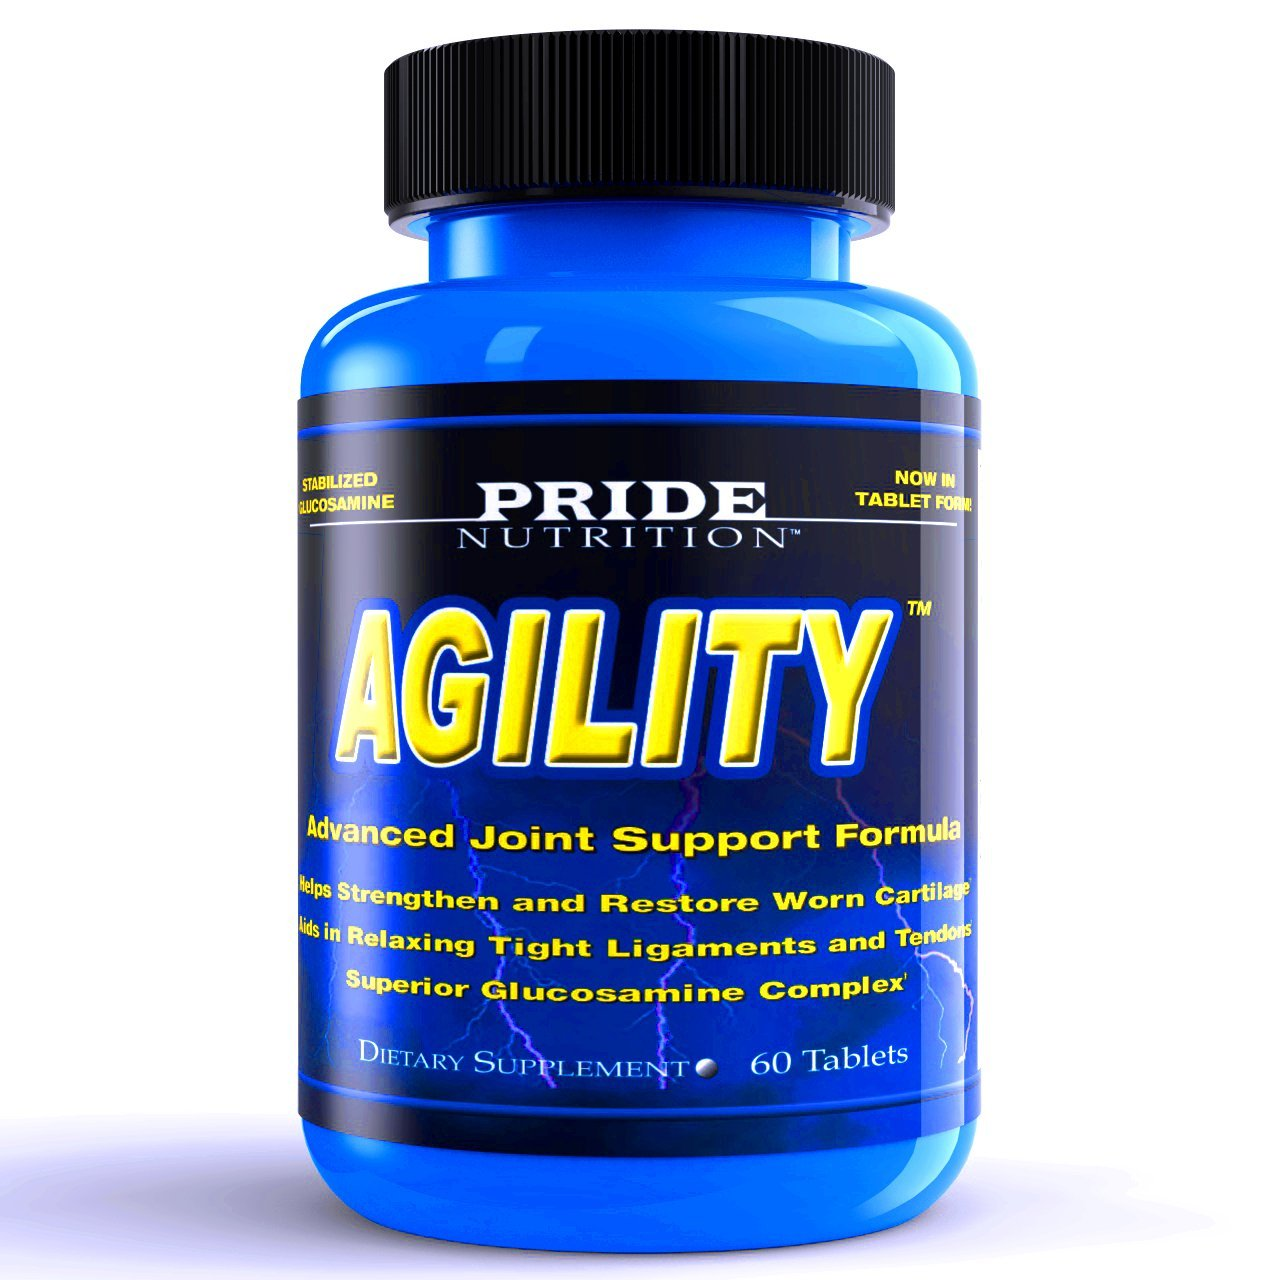 The most effective joint pills. Tablets for joints and ligaments